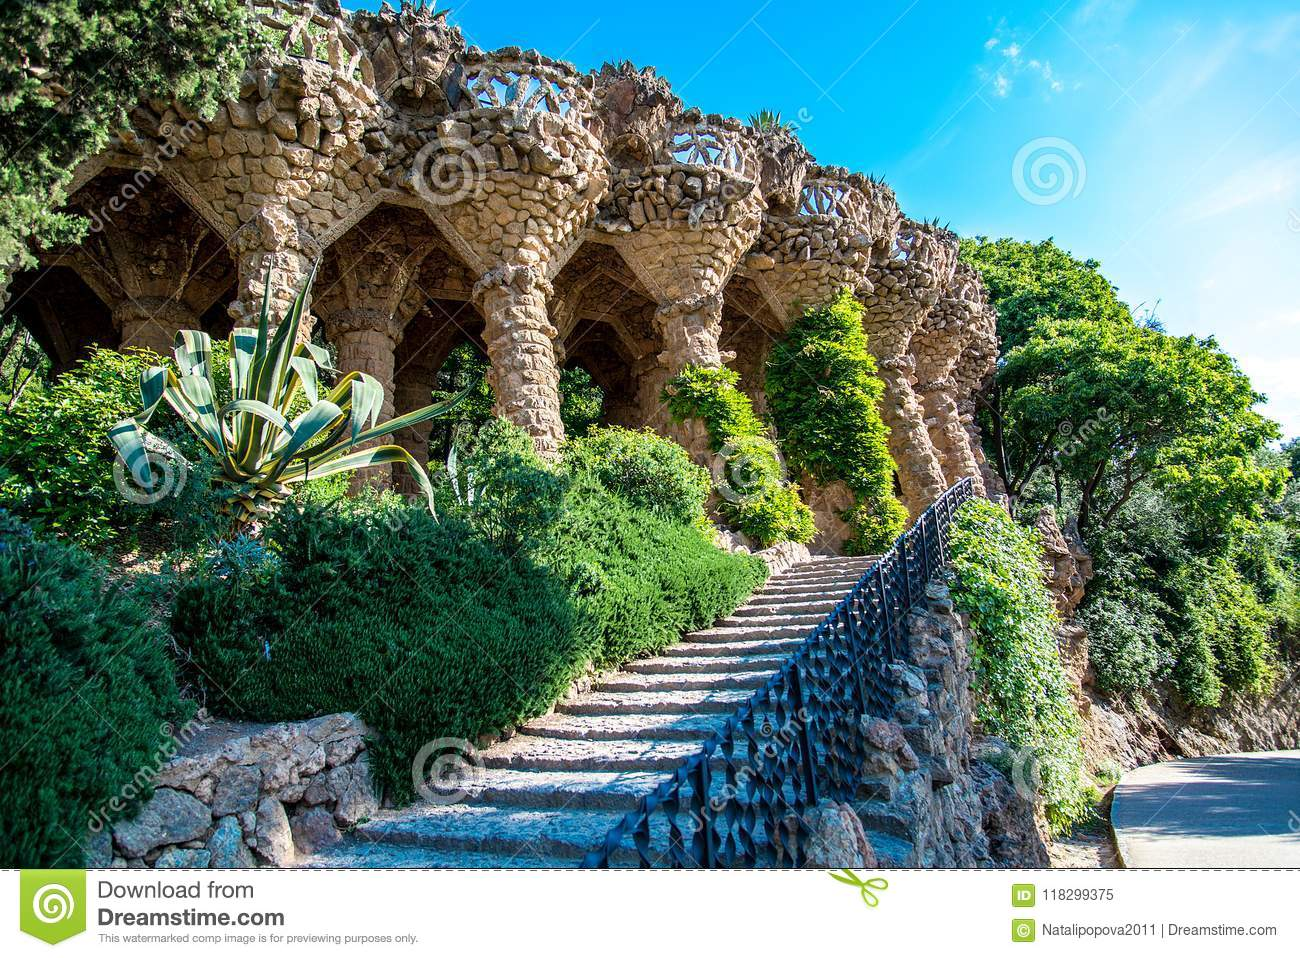 Park guell columns and viaducts, Barcelona, Spain - May 16, 2018.